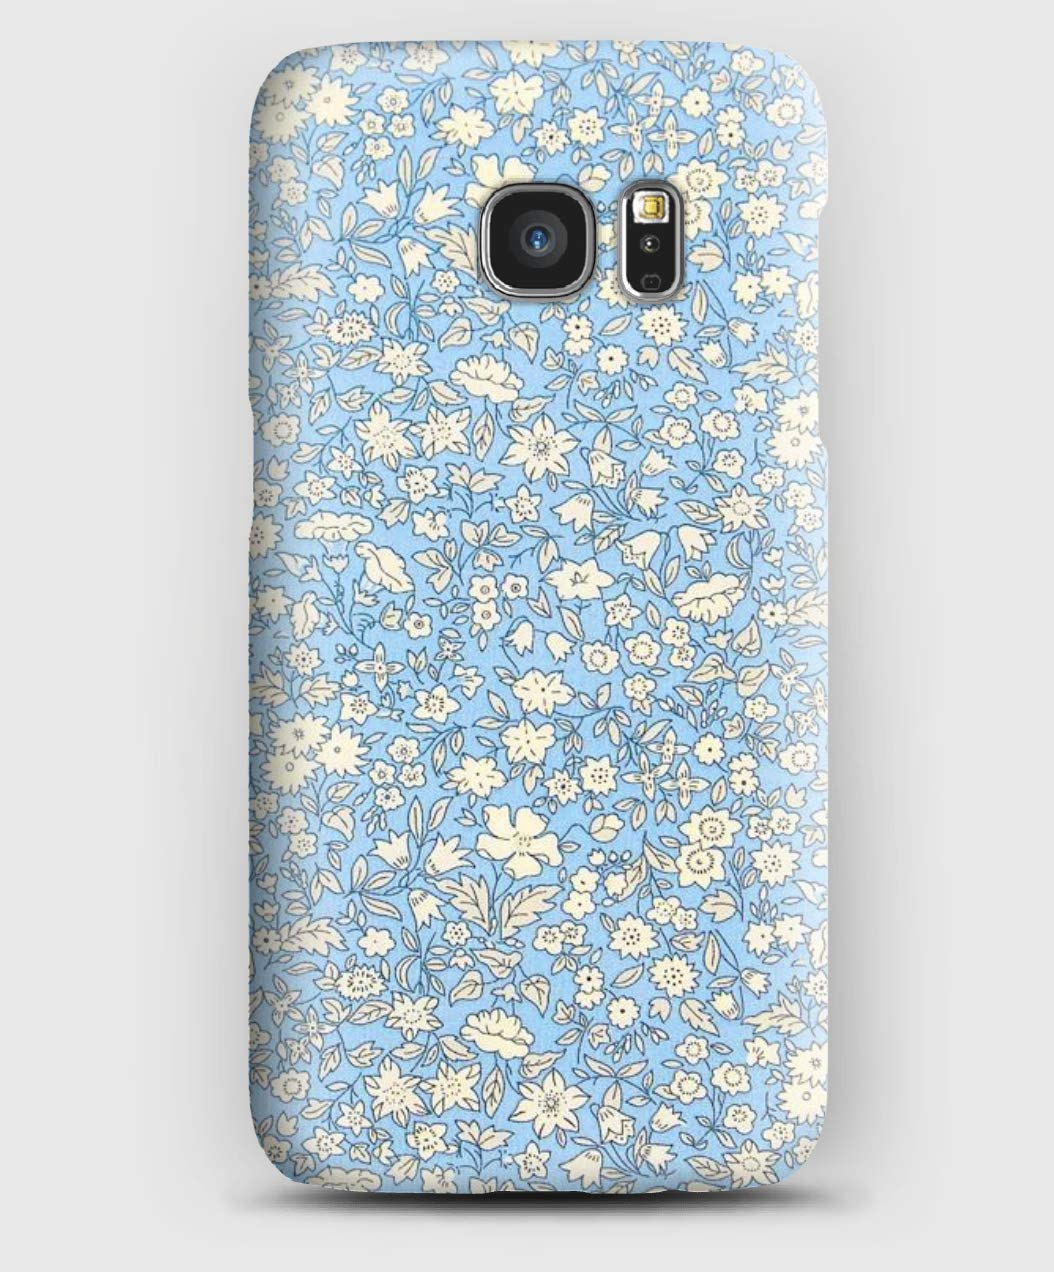 Liberty Daisy Daisy, coque pour Samsung S5, S6, S7, S8, S9, A3, A5, A7,A8, J3, J5, Note 4, 5, 8,9,Grand prime,